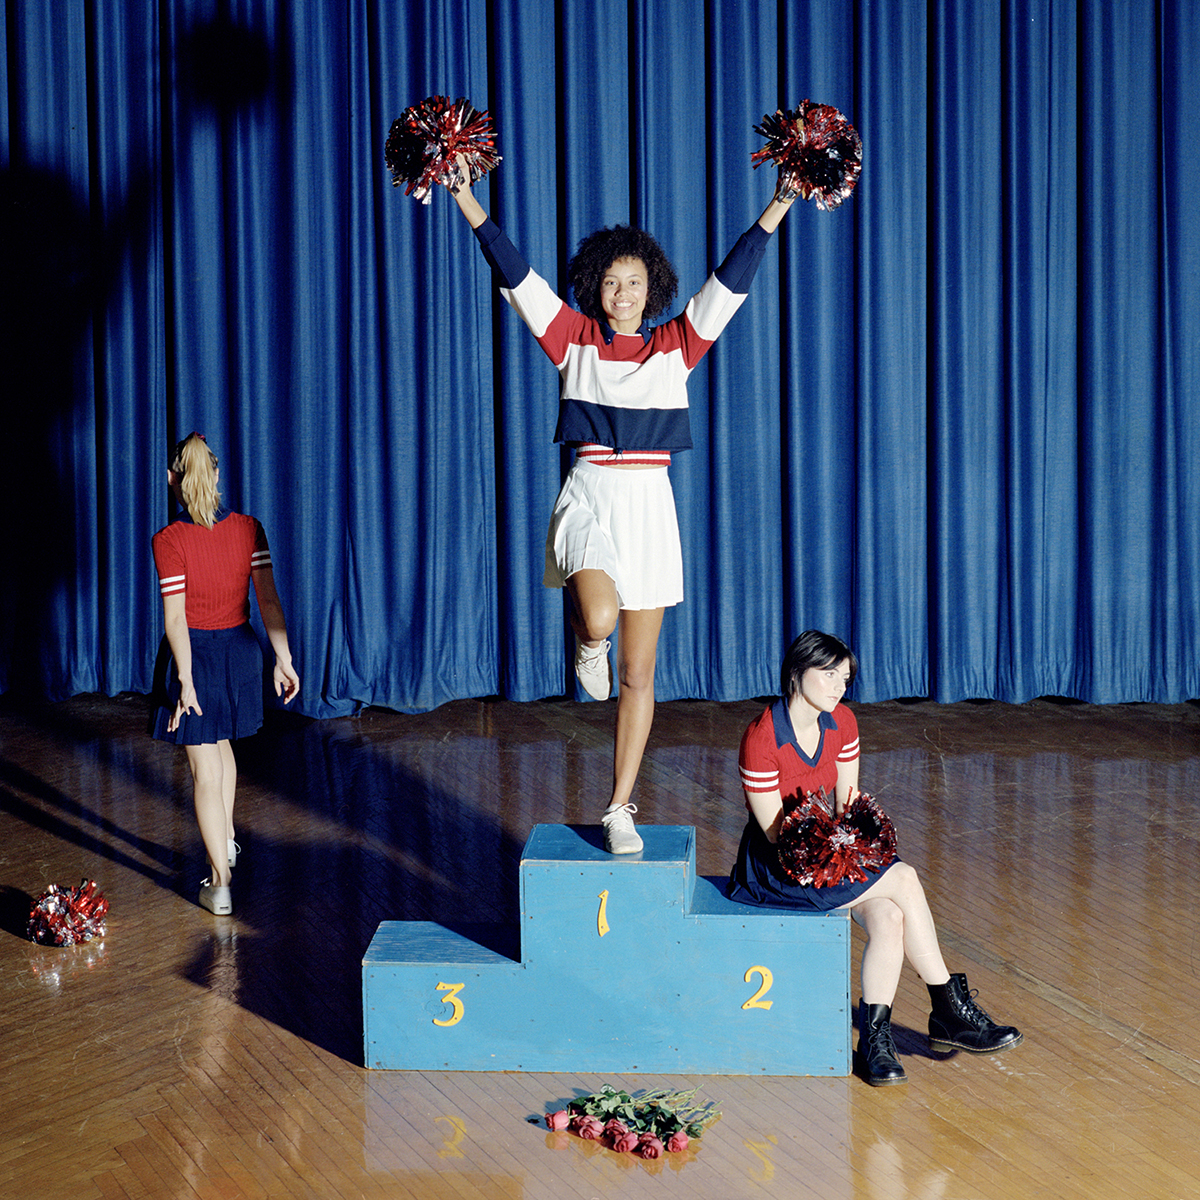 Portrait photography of a cheerleader standing on a podium while another cheerleader walks away and one sits on a podium.